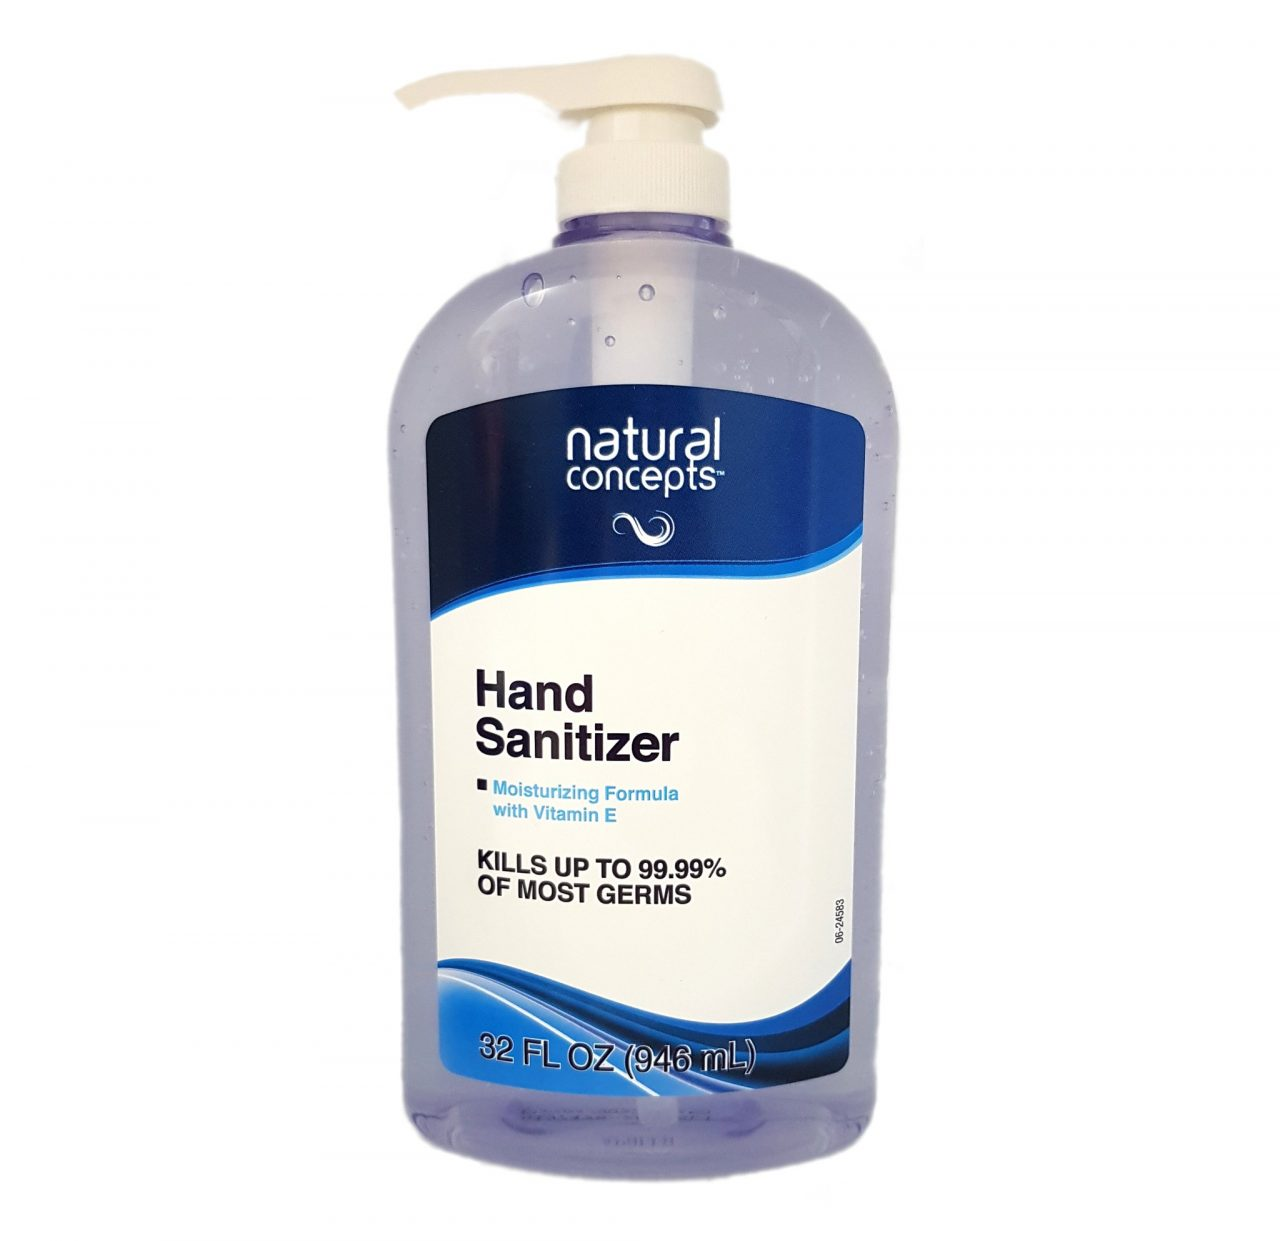 NaturalConceptsHandSanitizer946mL_2048x-1280x1241.jpg